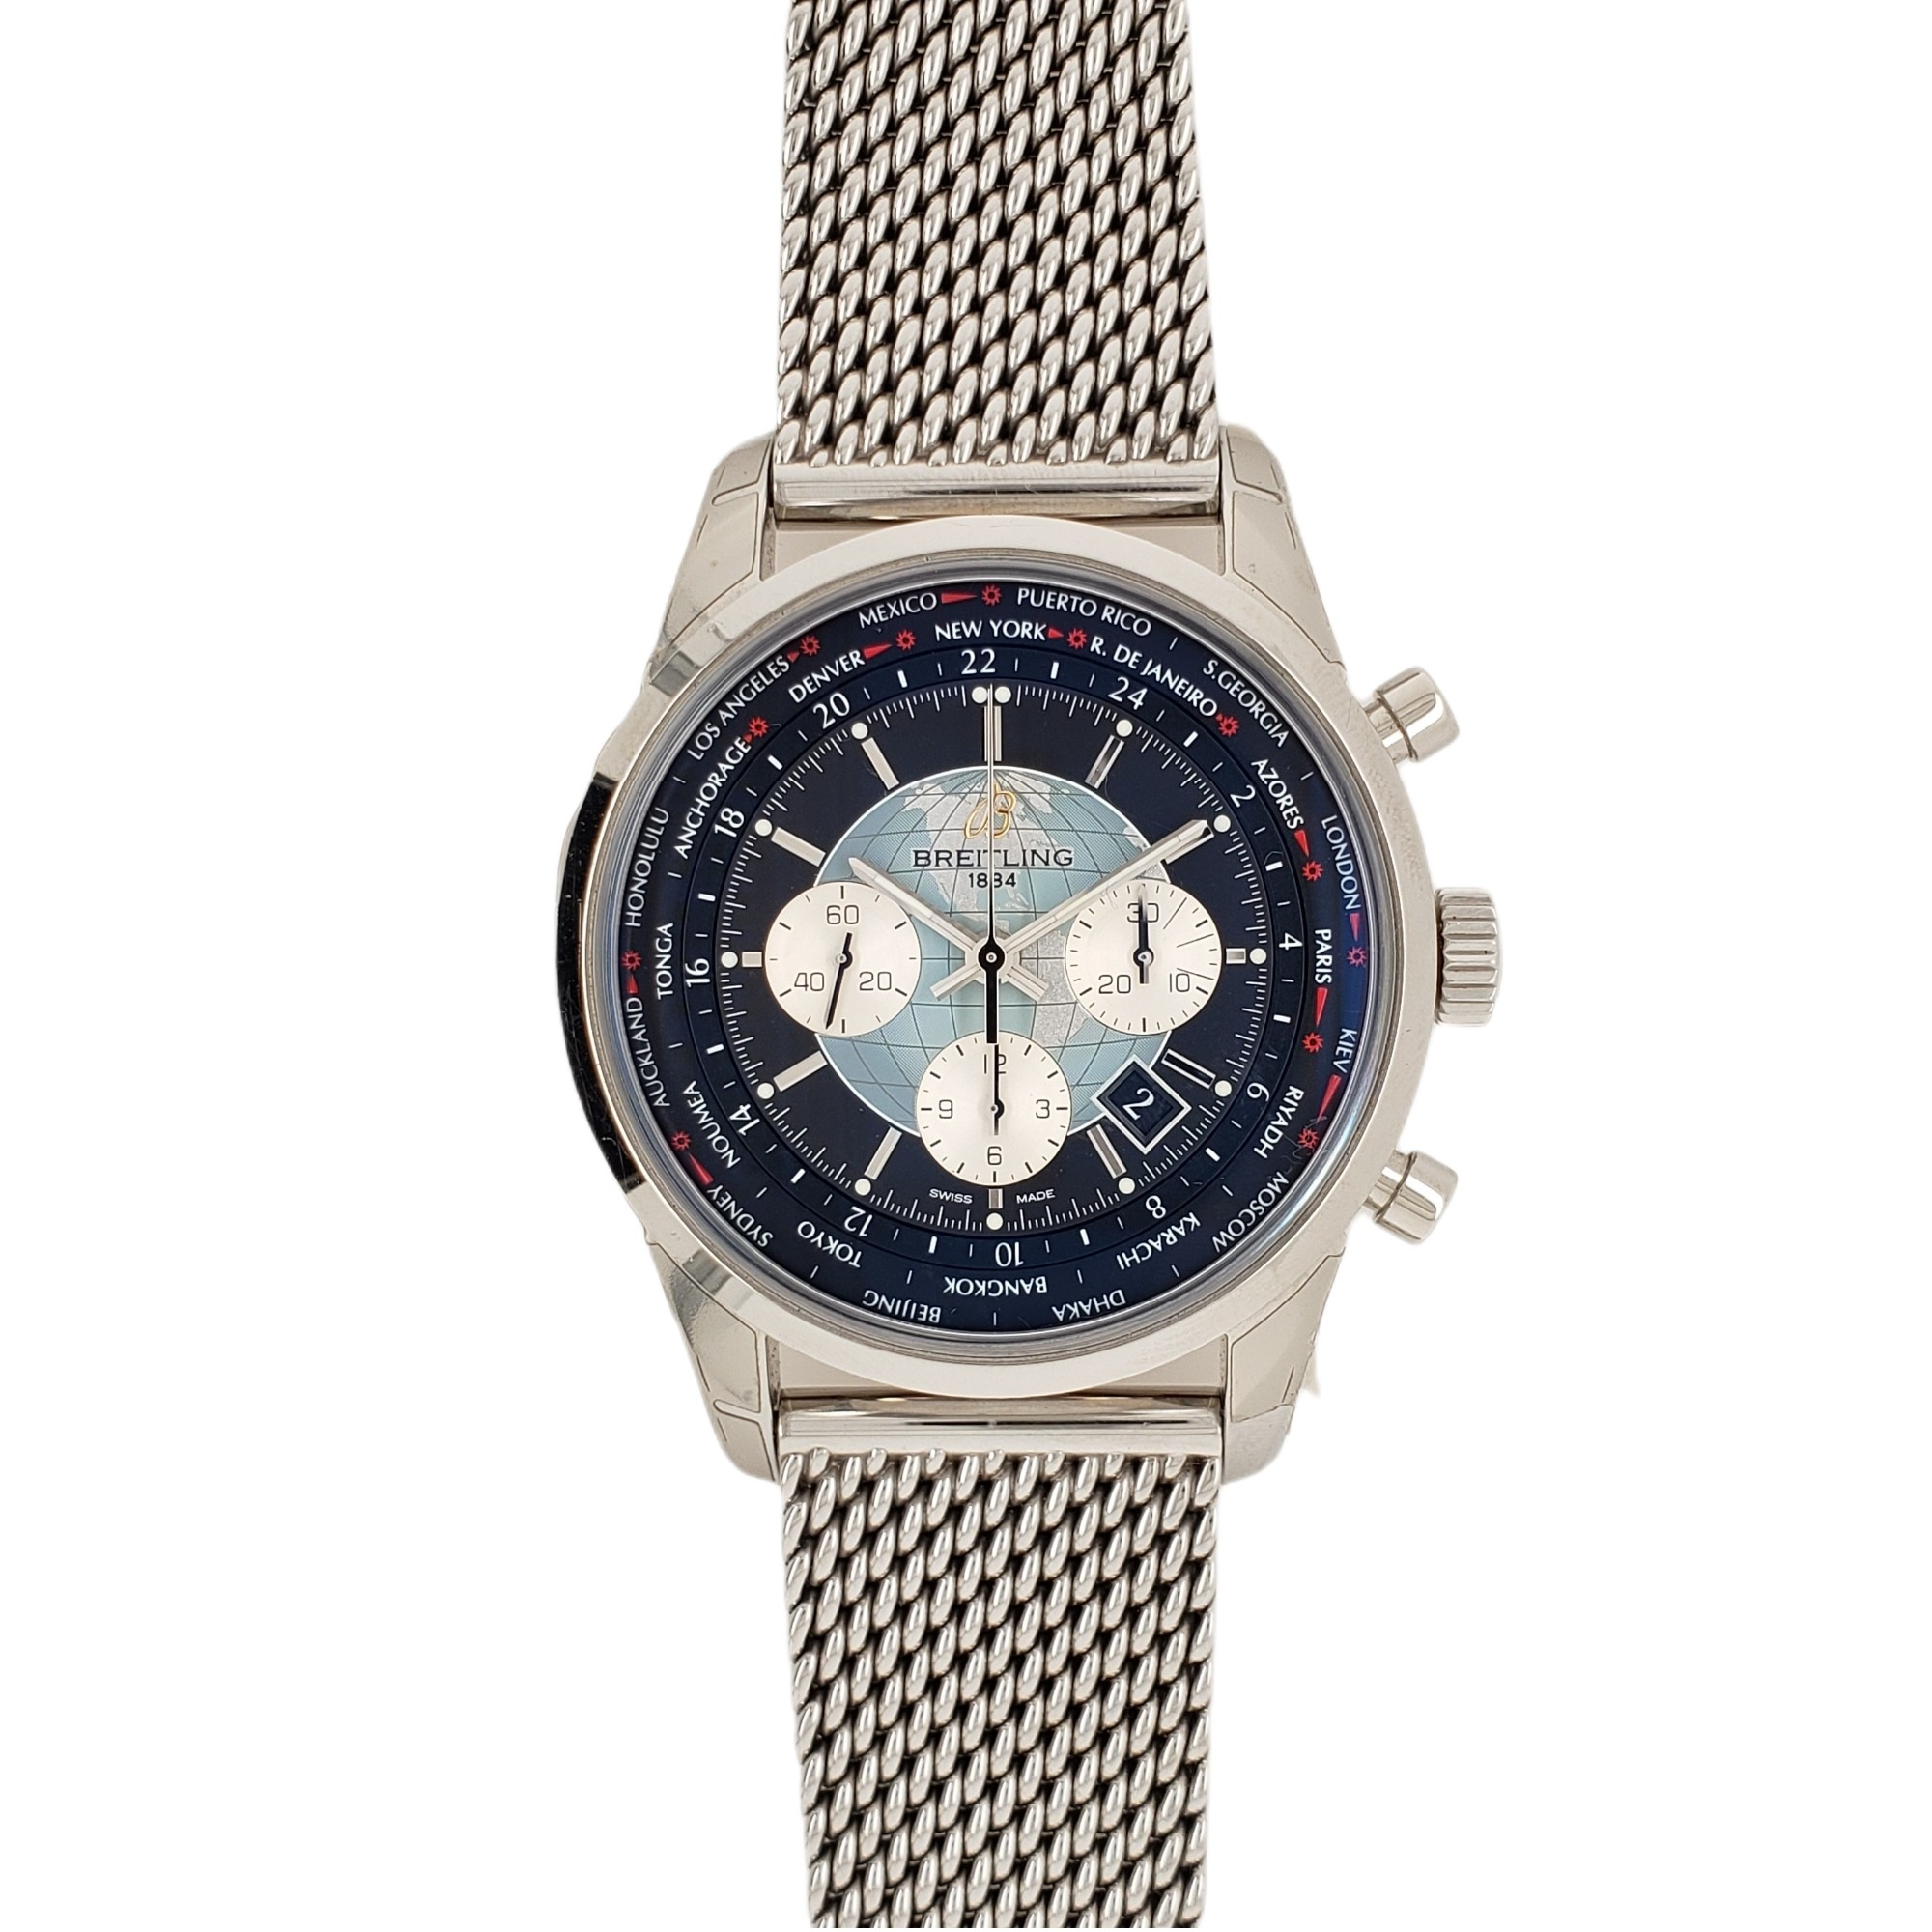 STAINLESS STEEL BREITLING TRANSOCEAN CHRONOGRAPH